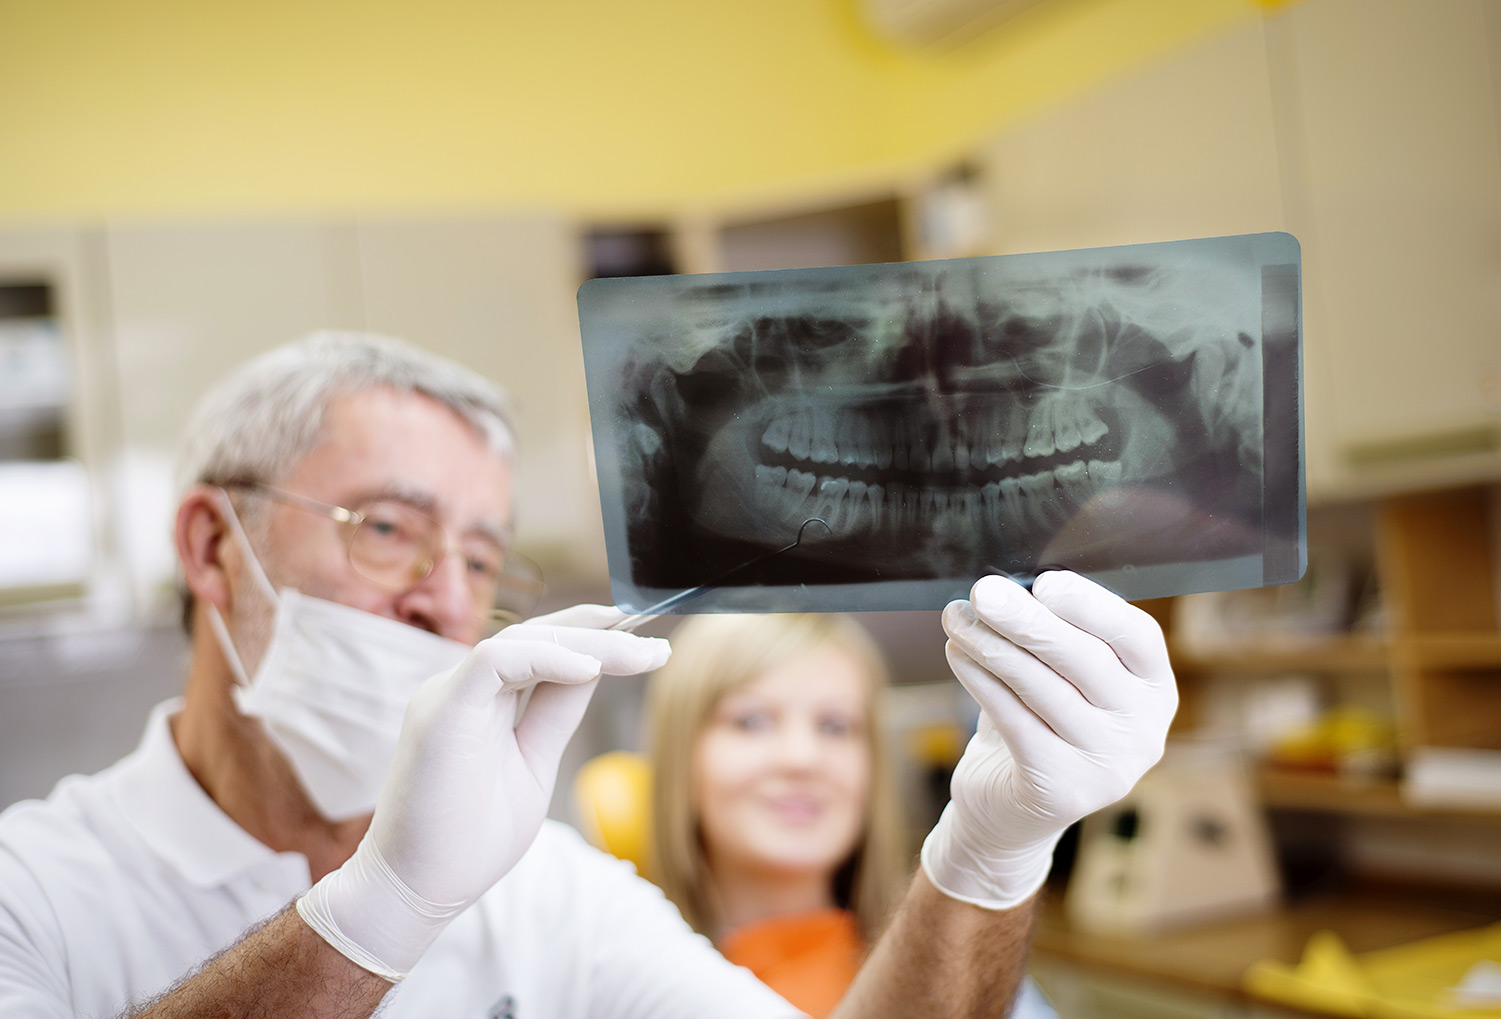 Dentist showing x-ray of teeth to patient